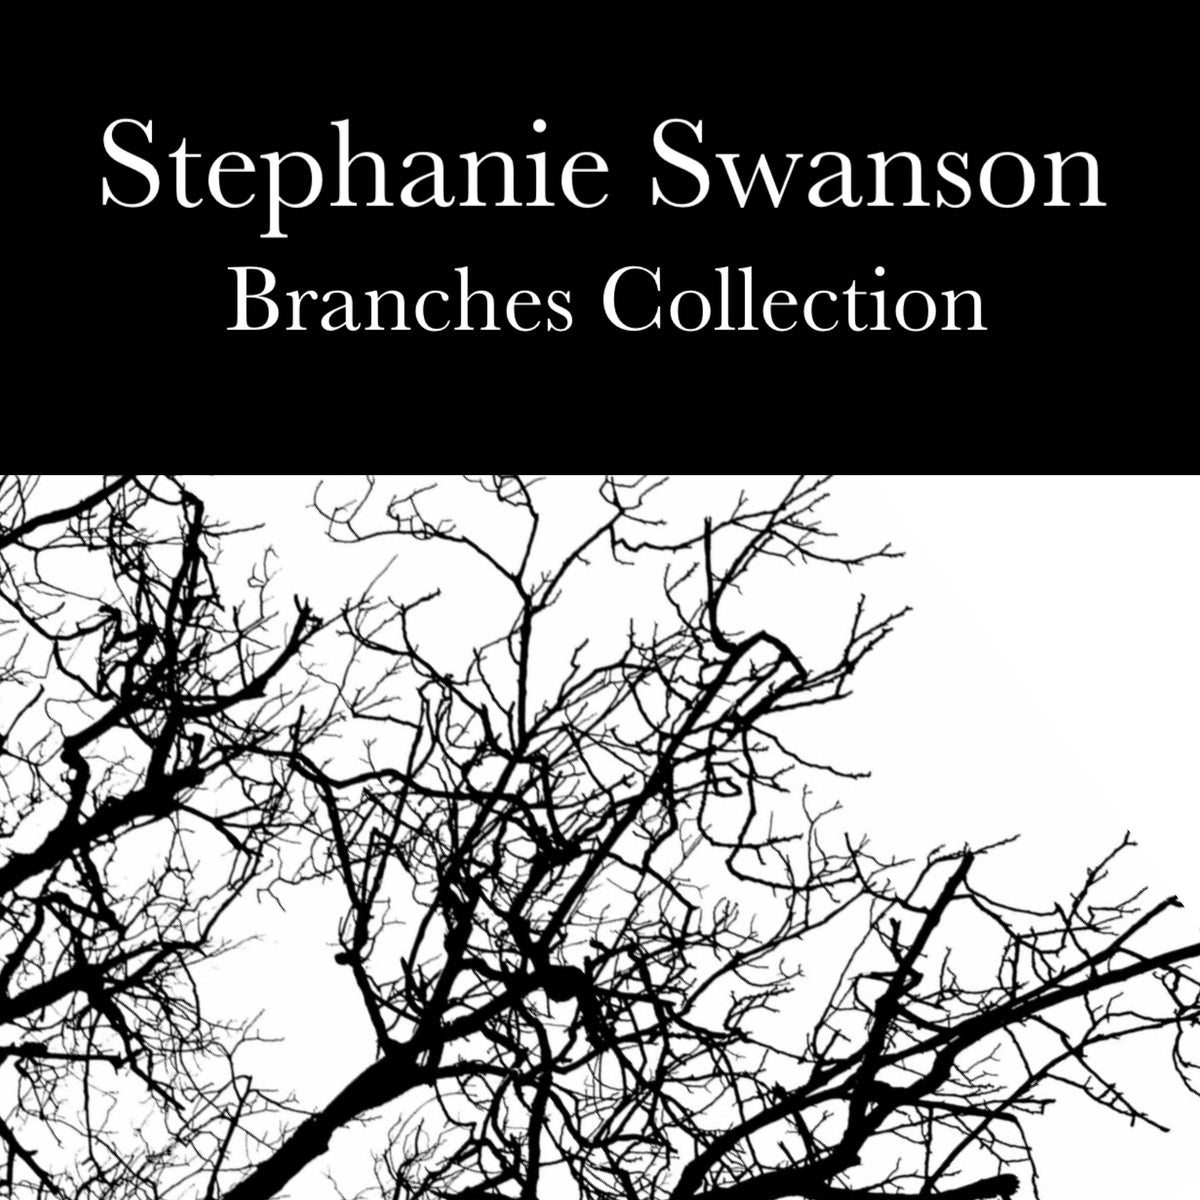 Branches Collection